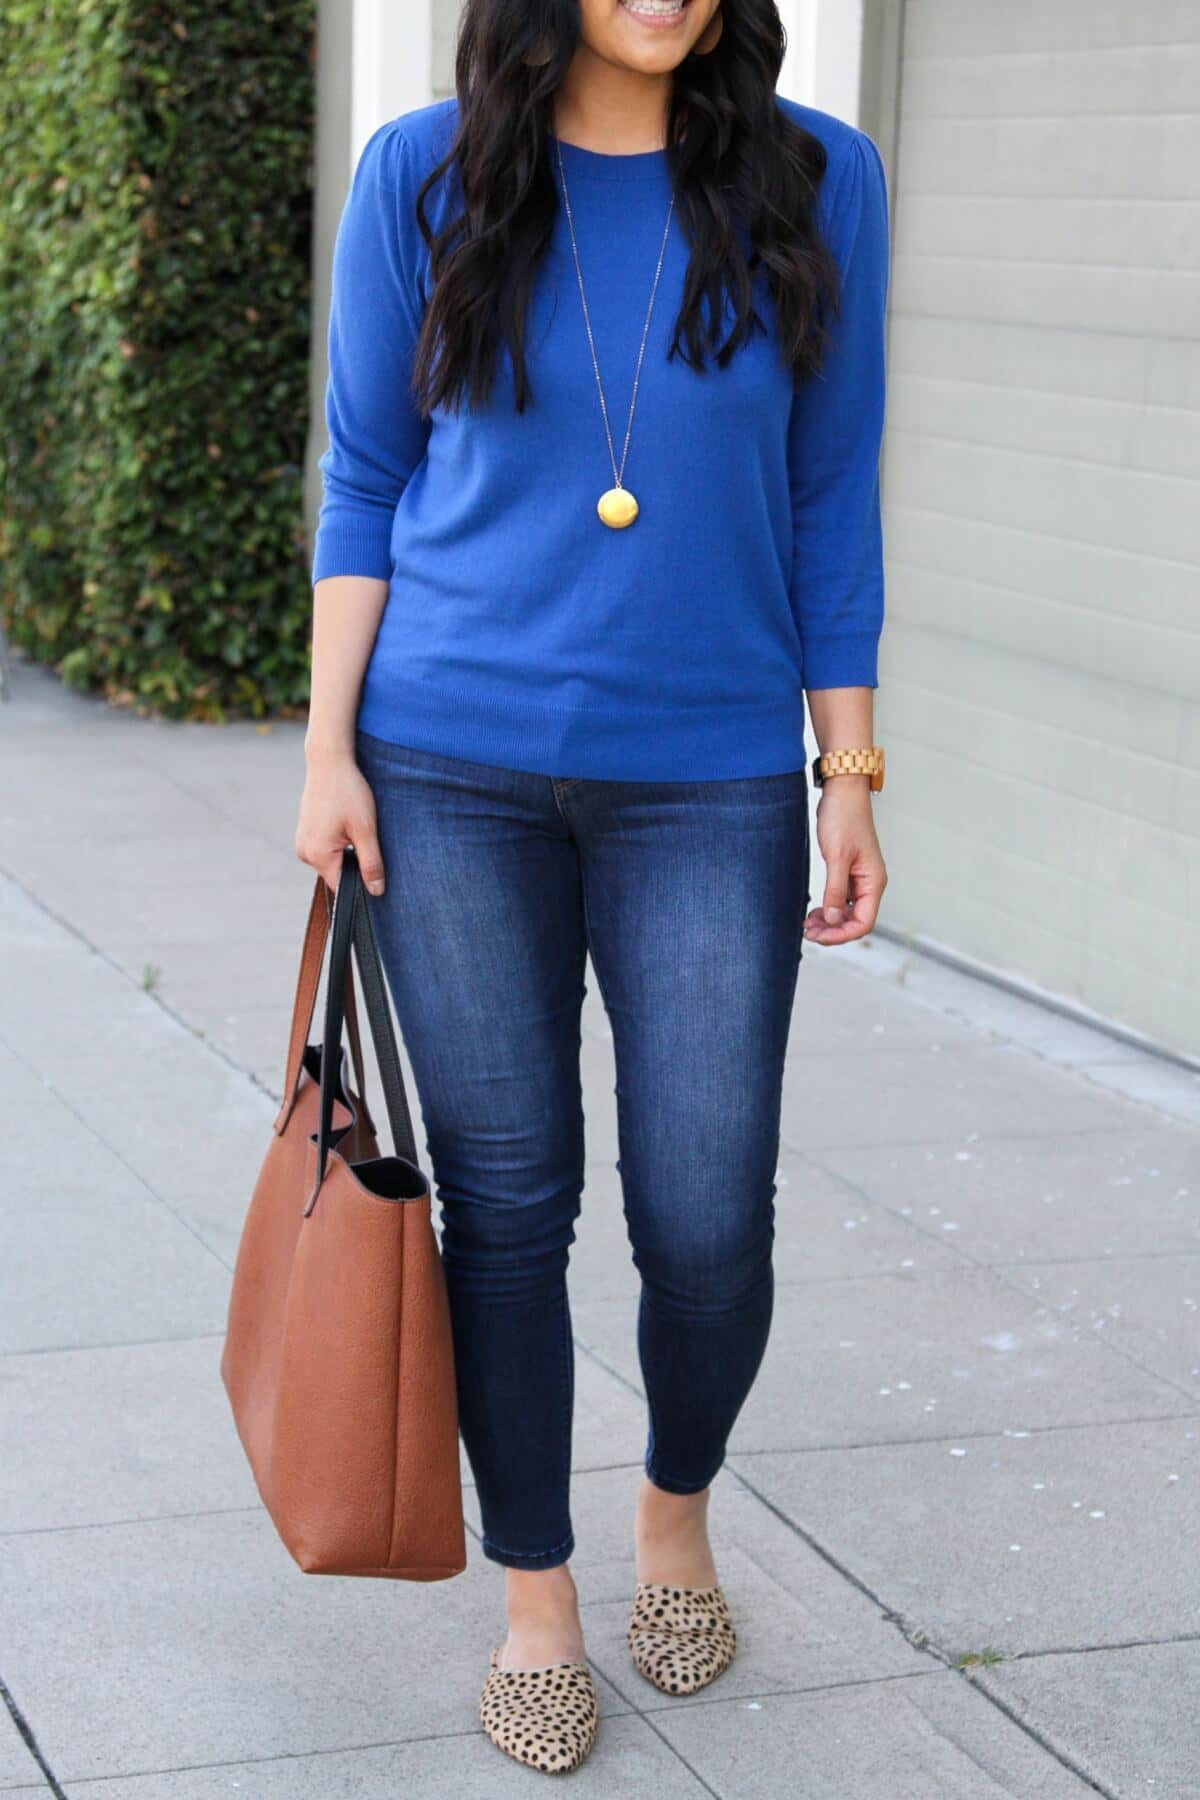 Casual Fall Outfit: skinny jeans + blue sweater + cognac tote + leopard mules + gold leather earrings + gold circle pendant necklace